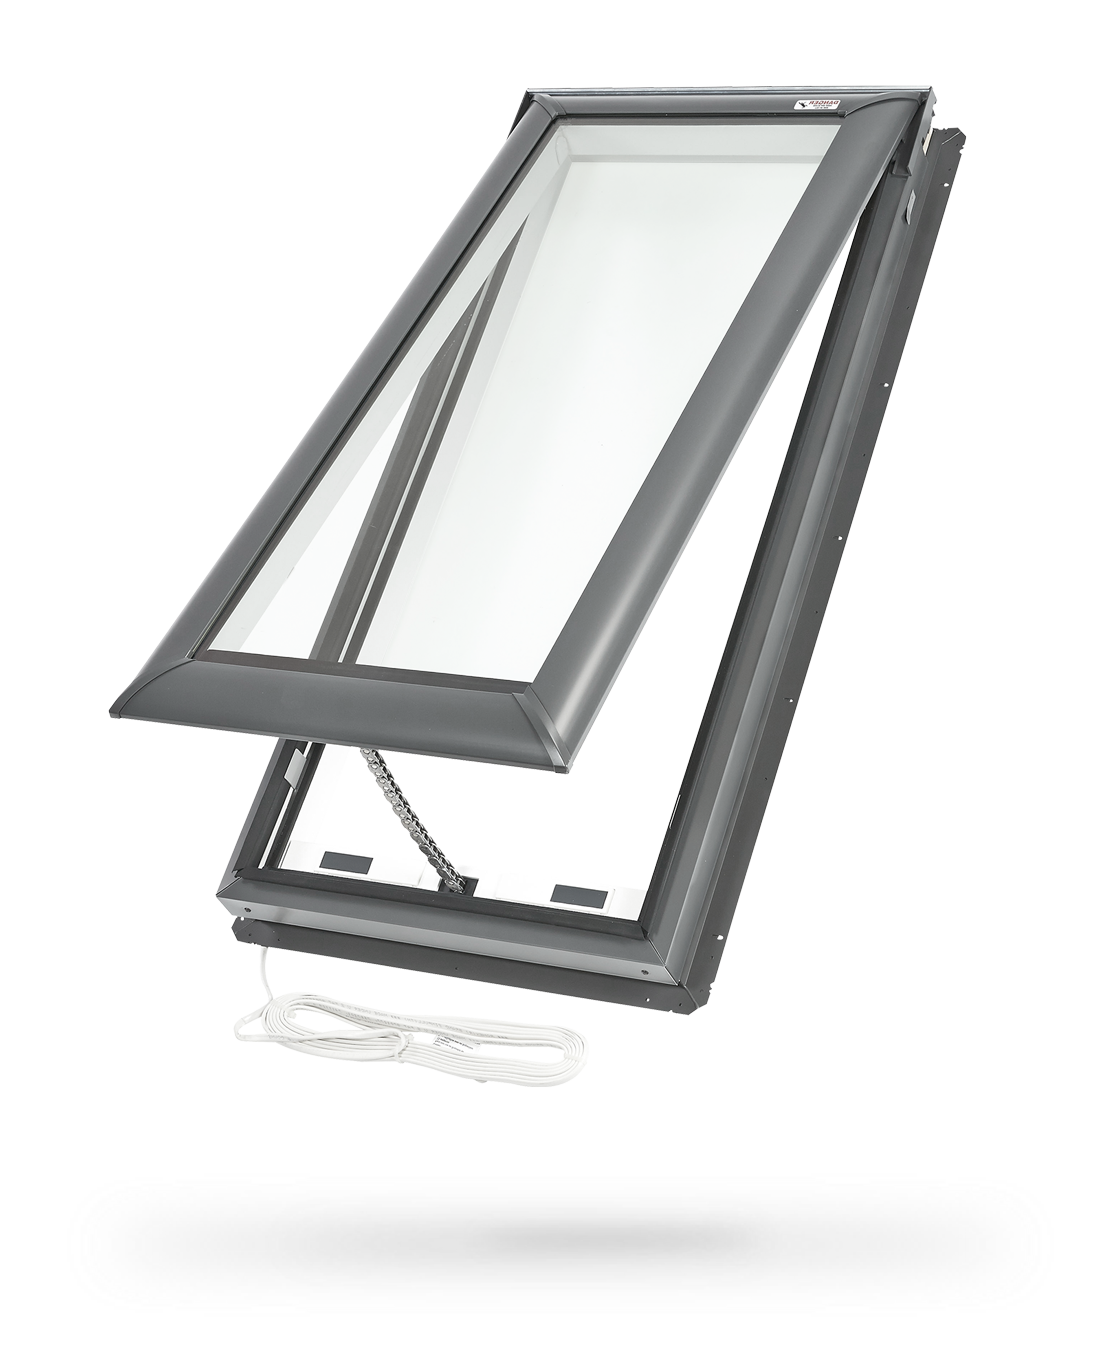 Velux electric fresh air skylight electric skylight for Program velux remote control